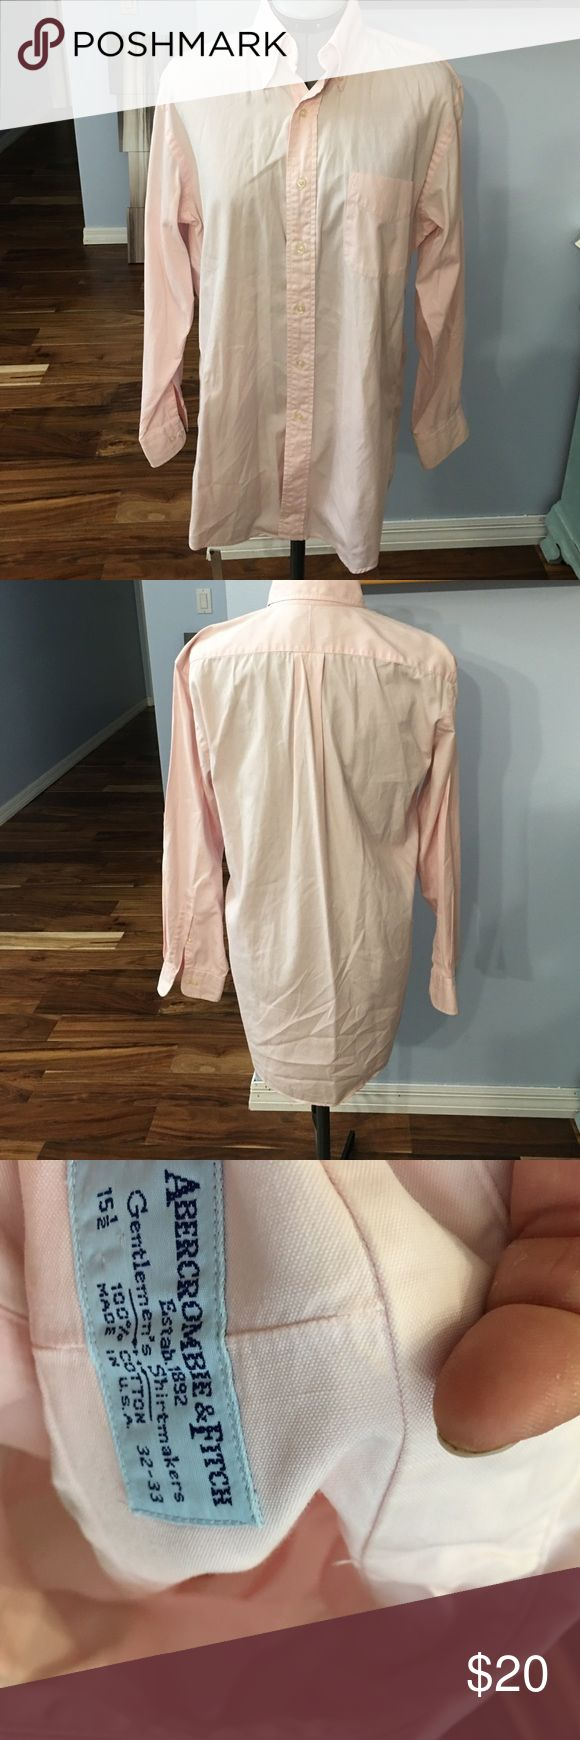 Abercrombie Fitch men's button down Great condition no tears or stains Abercrombie & Fitch Shirts Dress Shirts